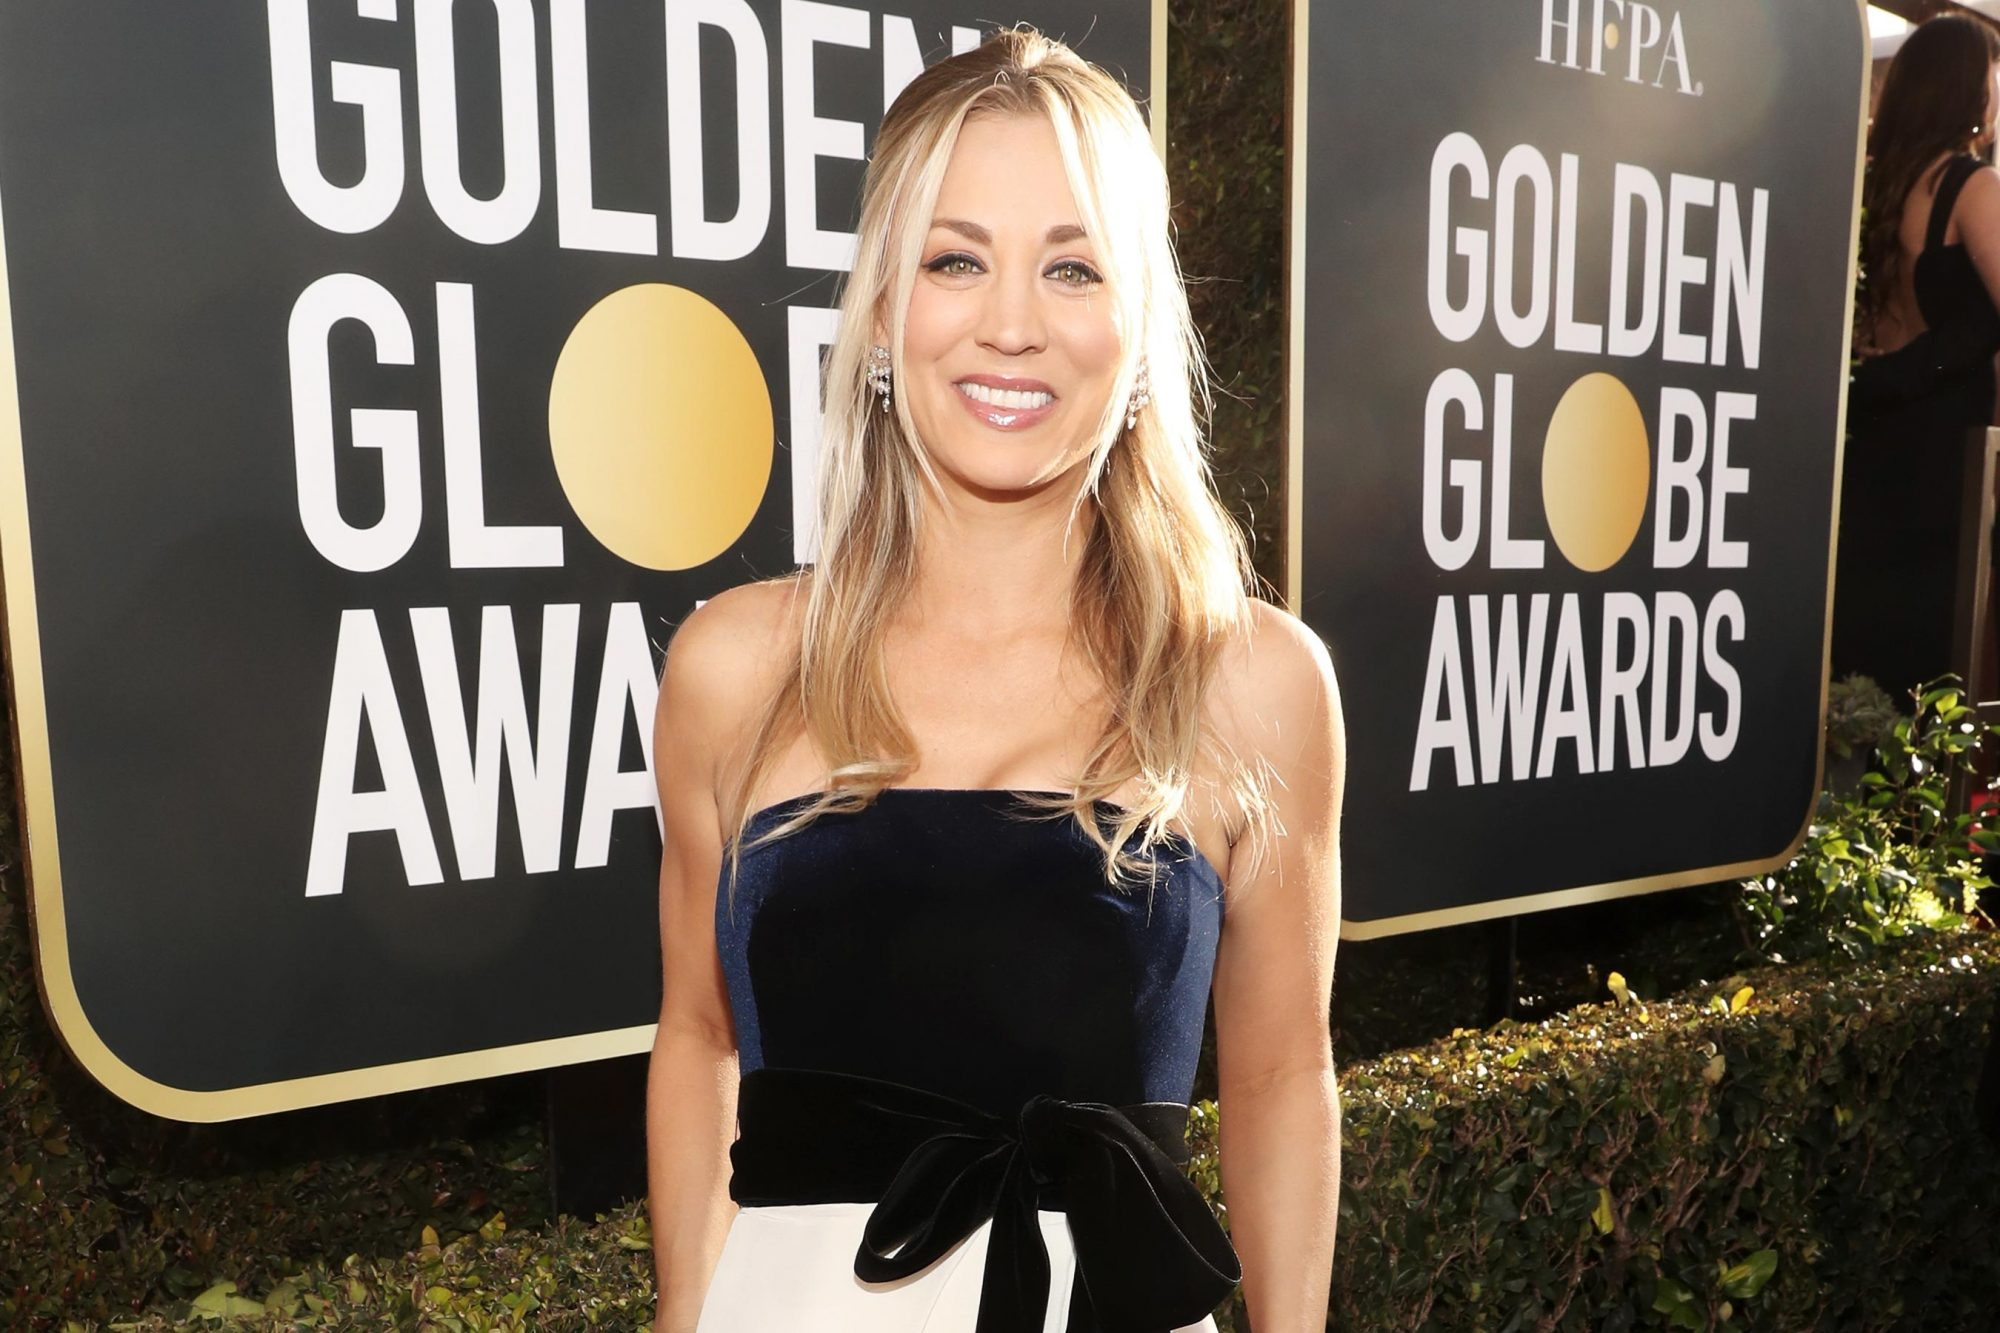 BEVERLY HILLS, CA - JANUARY 06: 76th ANNUAL GOLDEN GLOBE AWARDS -- Pictured: Kaley Cuoco arrive to the 76th Annual Golden Globe Awards held at the Beverly Hilton Hotel on January 6, 2019. -- (Photo by Todd Williamson/NBC/NBCU Photo Bank)